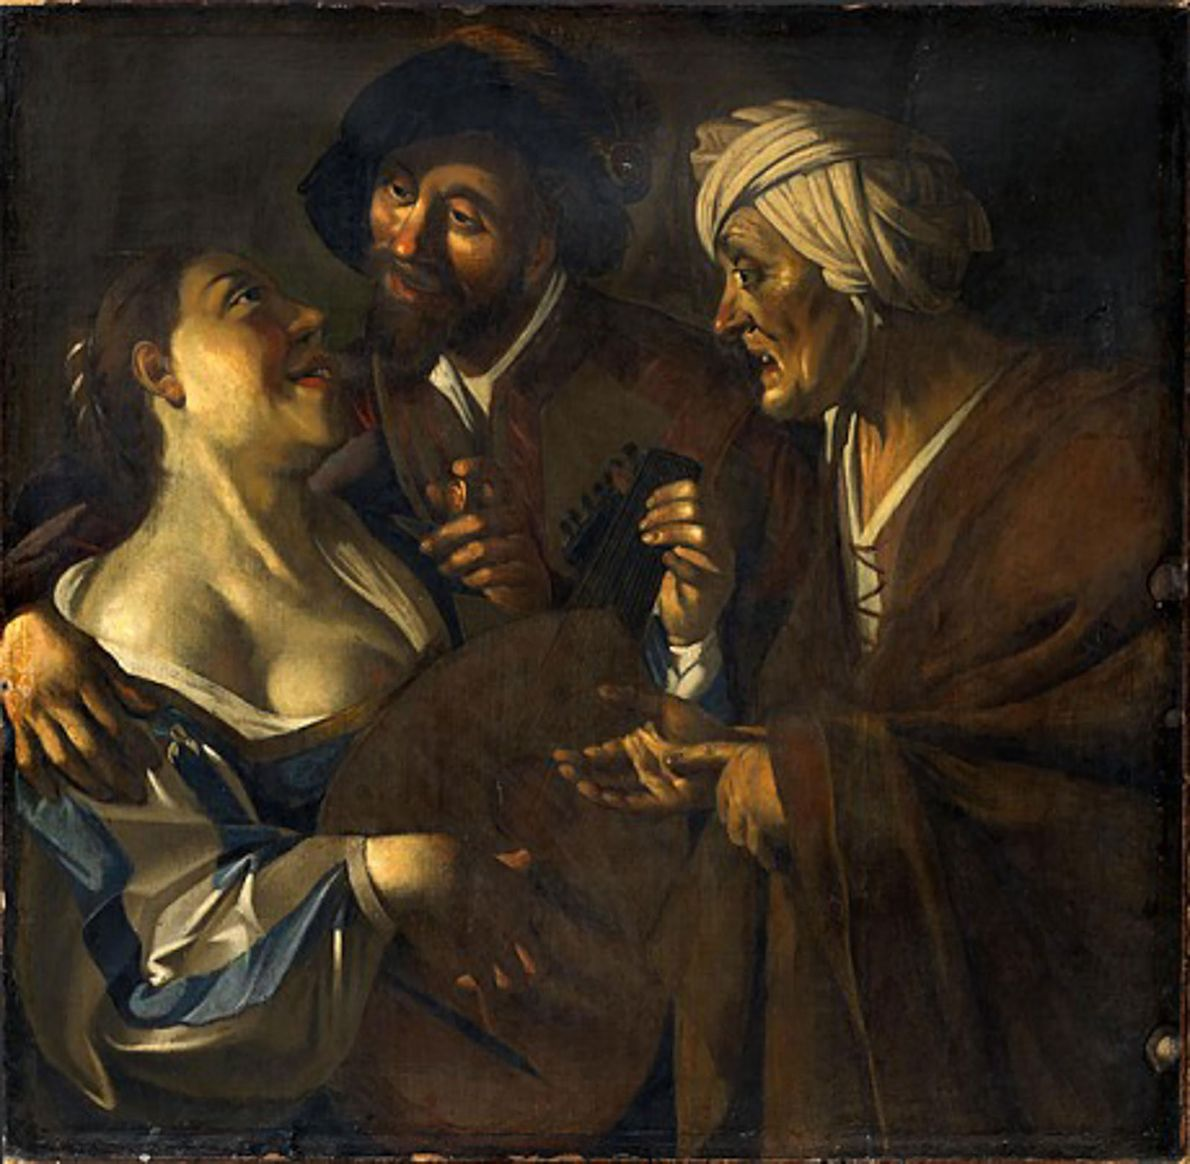 'The Procuress,' believed to be a forgery by Han van Meegeren, is one of the famous ...